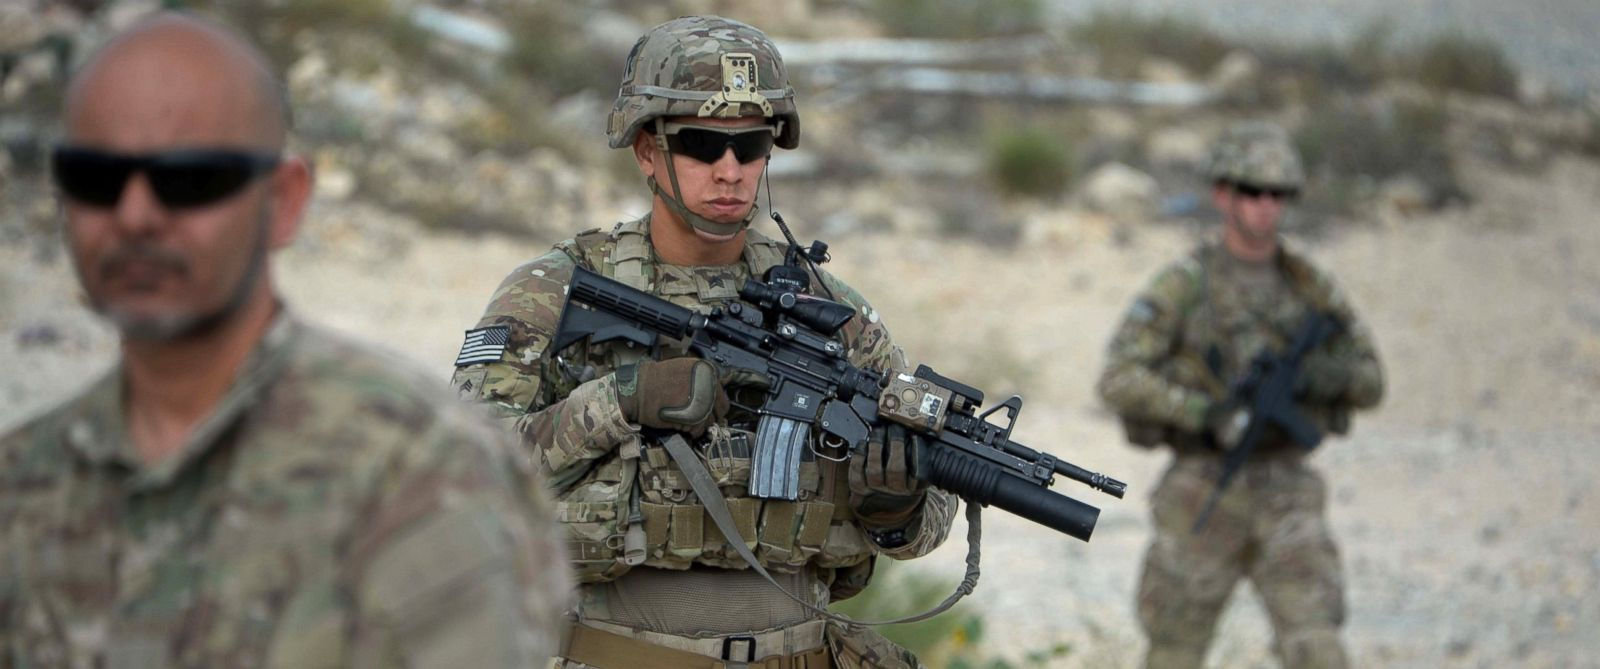 PHOTO: US soldiers part of NATO patrol during the final day of a month long anti-Taliban operation by the Afghan National Army (ANA) in various parts of eastern Nangarhar province, at an Afghan National Army base in Khogyani district, Aug. 30, 2015.